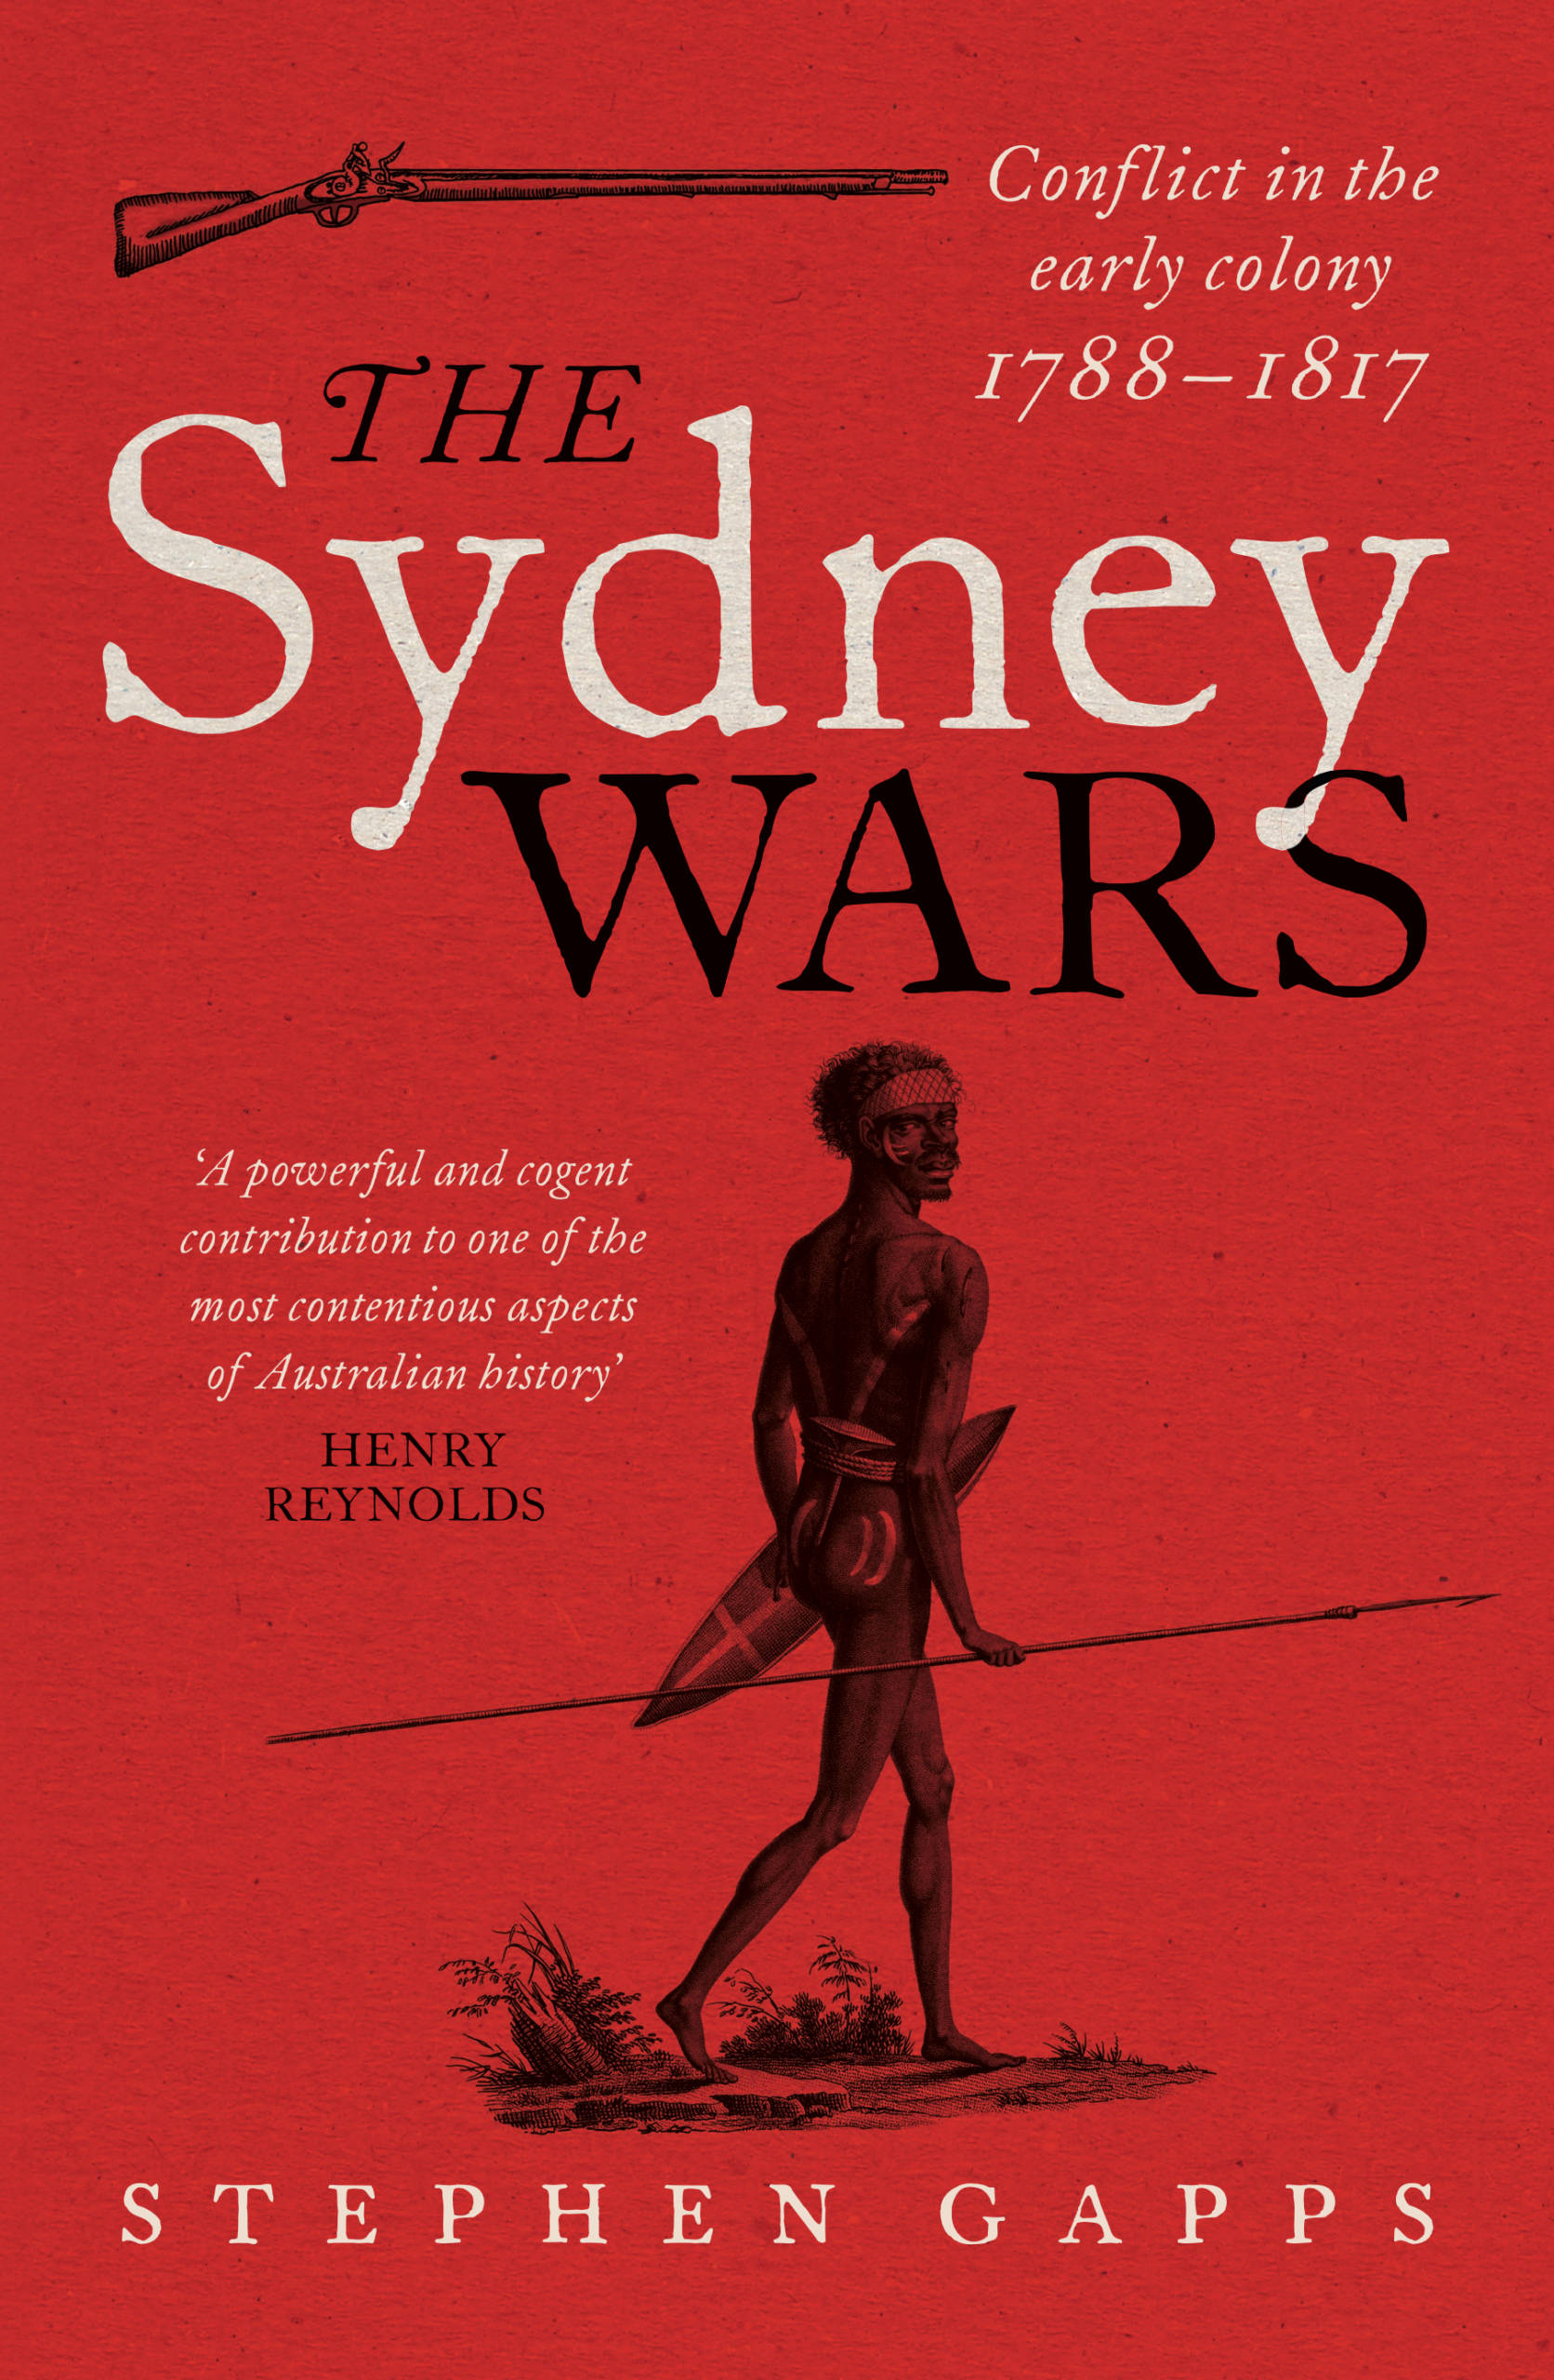 The Sydney Wars: Conflict in the early colony, 1788-1817 by Stephen Gapps, ISBN: 9781742232140